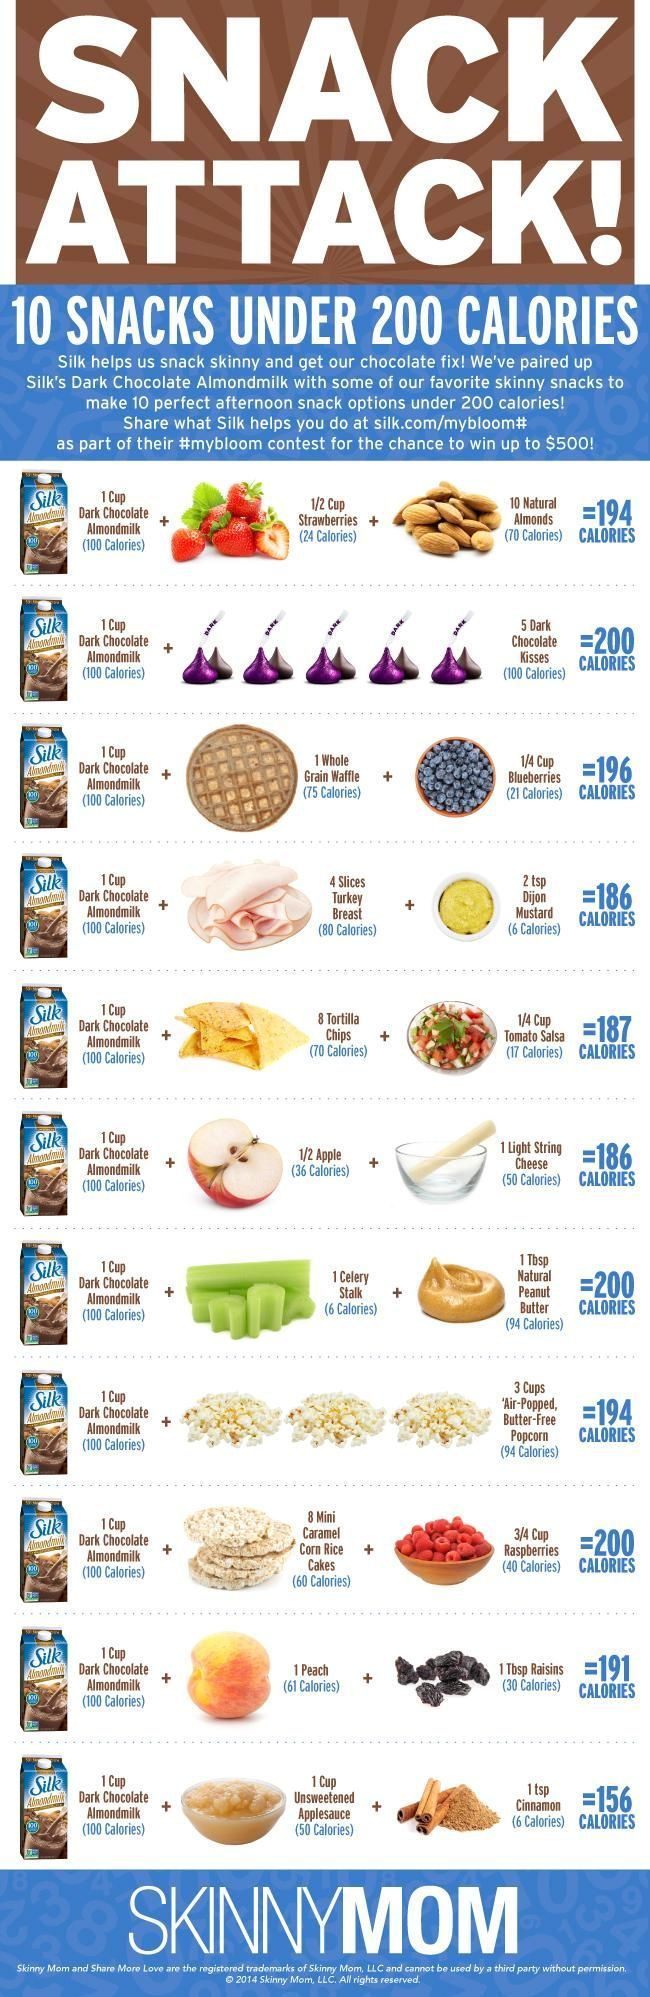 how to eat a lot but still be skinny